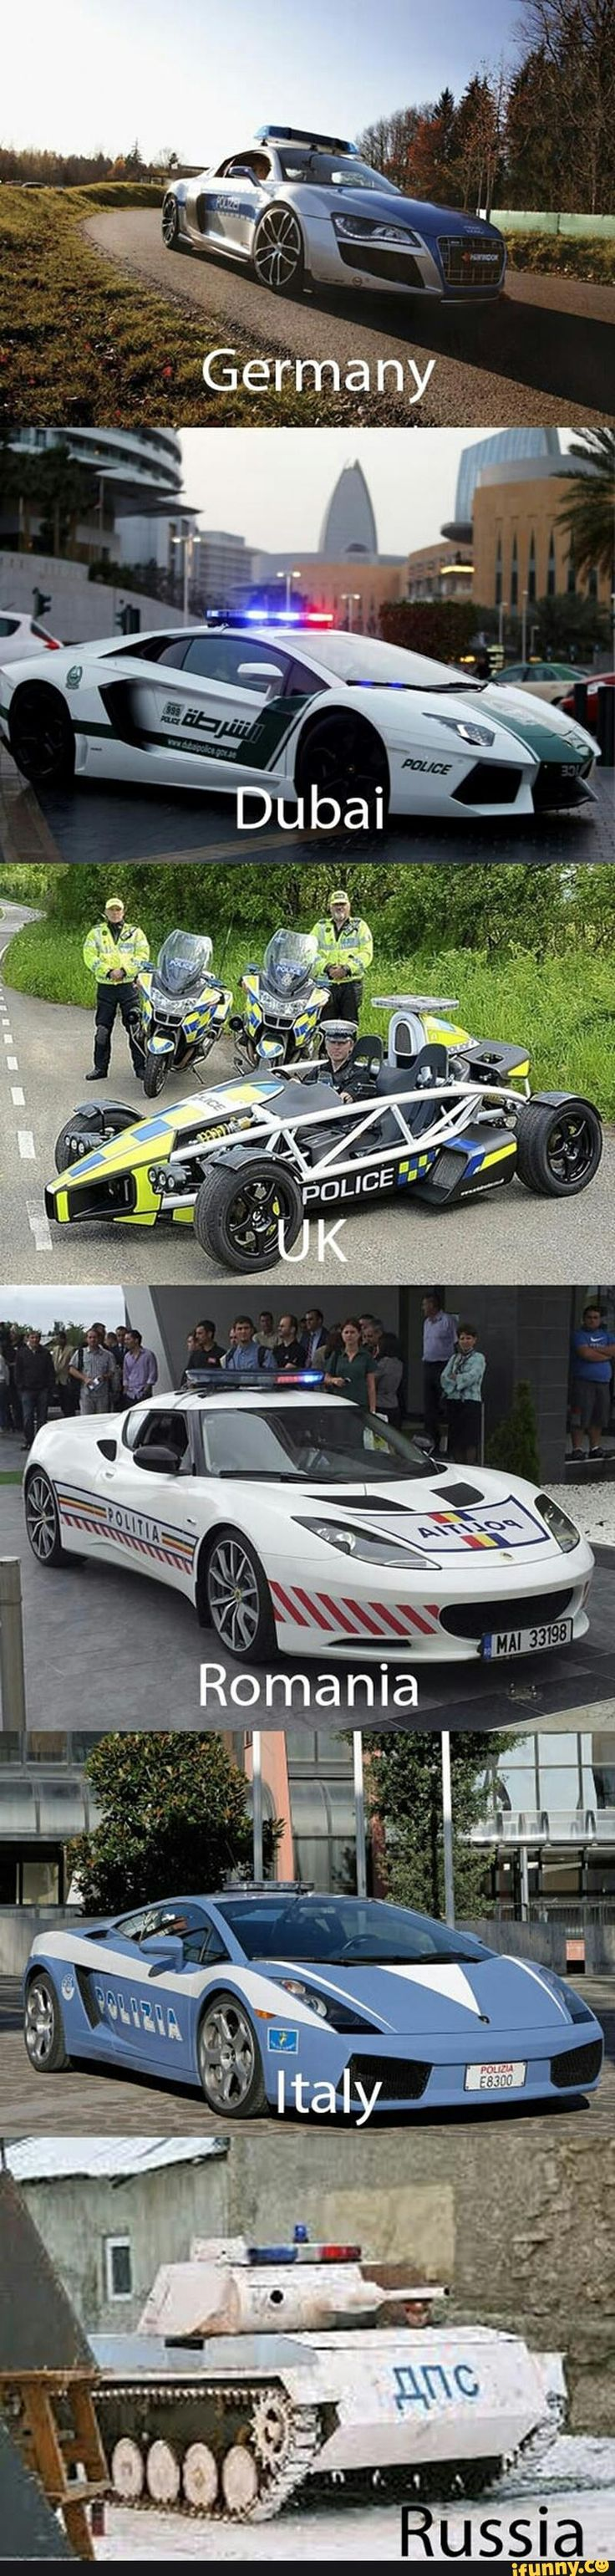 British police use an aerial atom? That's a heck of a car compared to the usual diesel Astras that are used over here